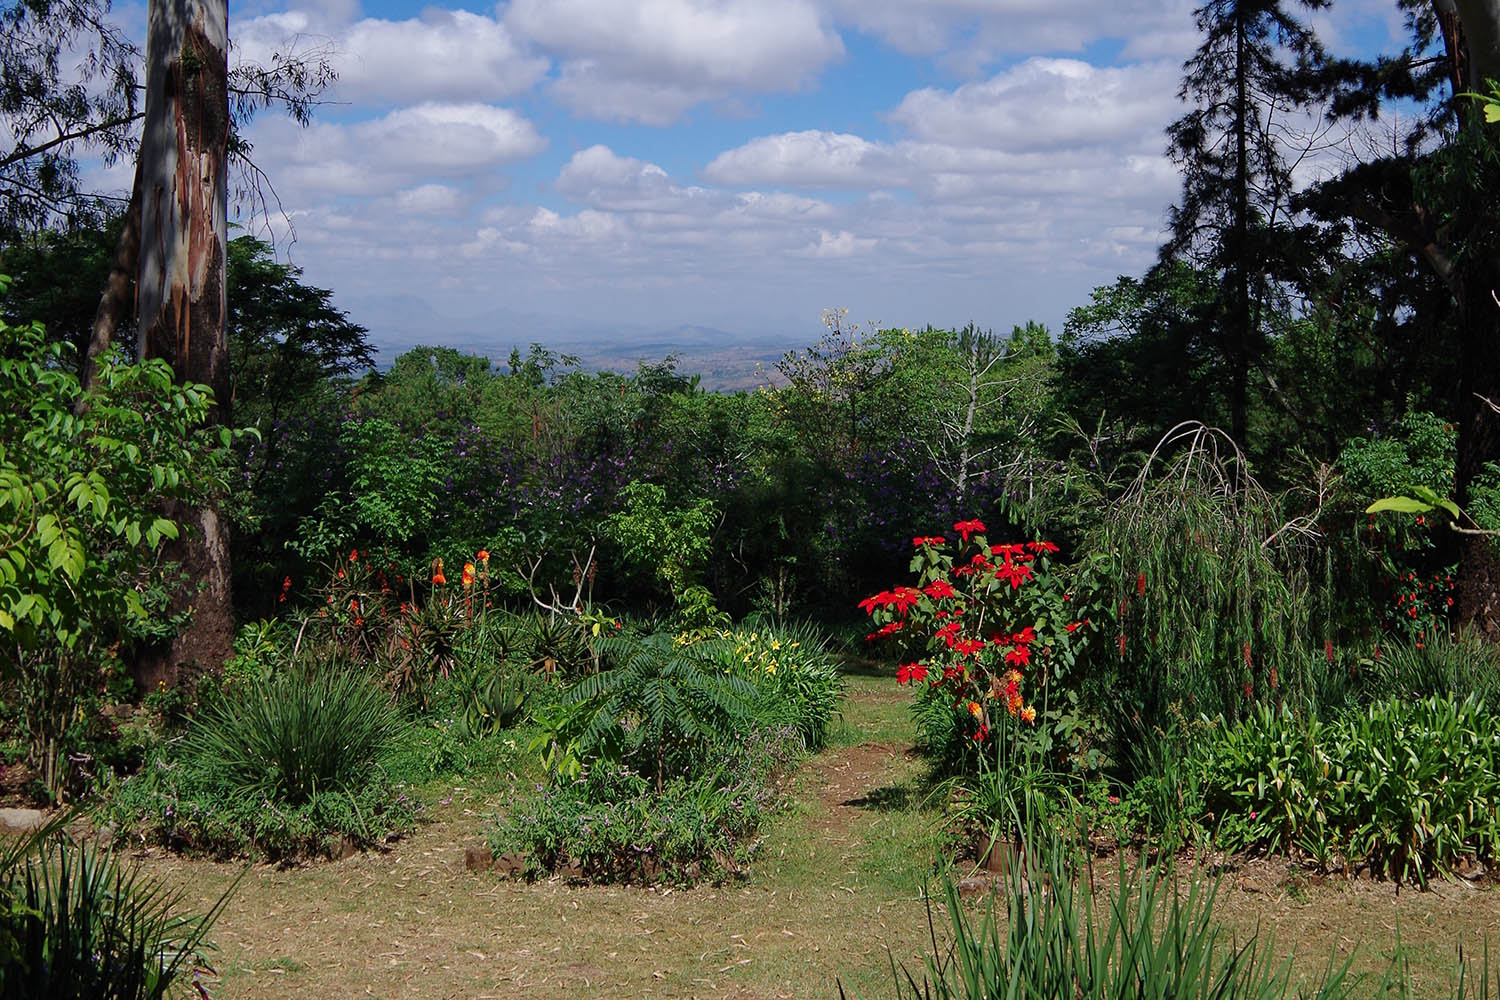 zomba plateau tours-malawian-style-malawi-adventures-experiences-specialist-tour-operator-landscape-views-garden